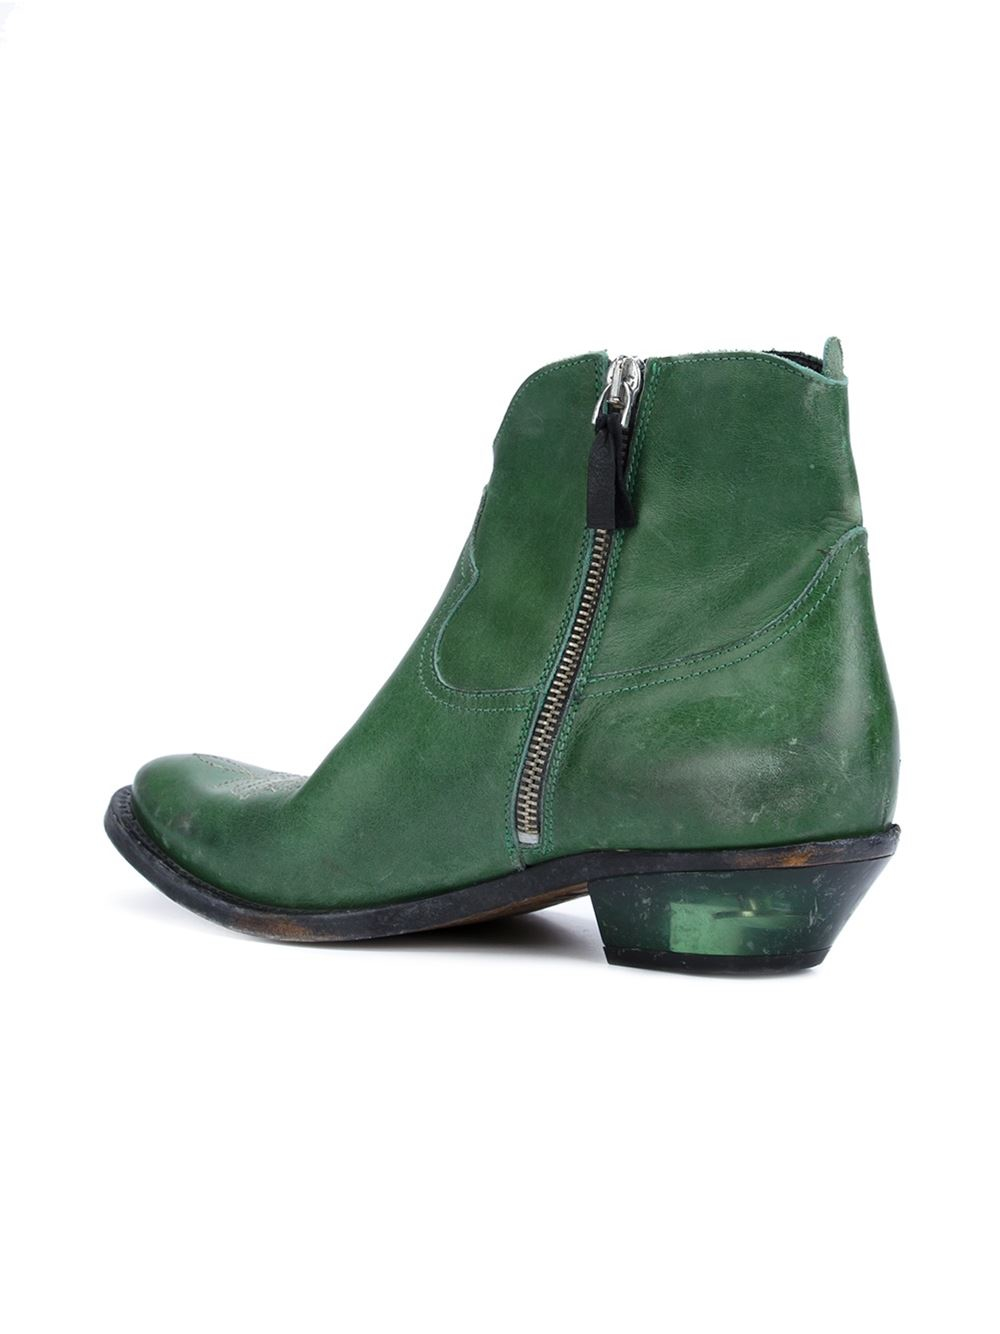 Golden Goose Deluxe Brand Lena Leather Boots in Green